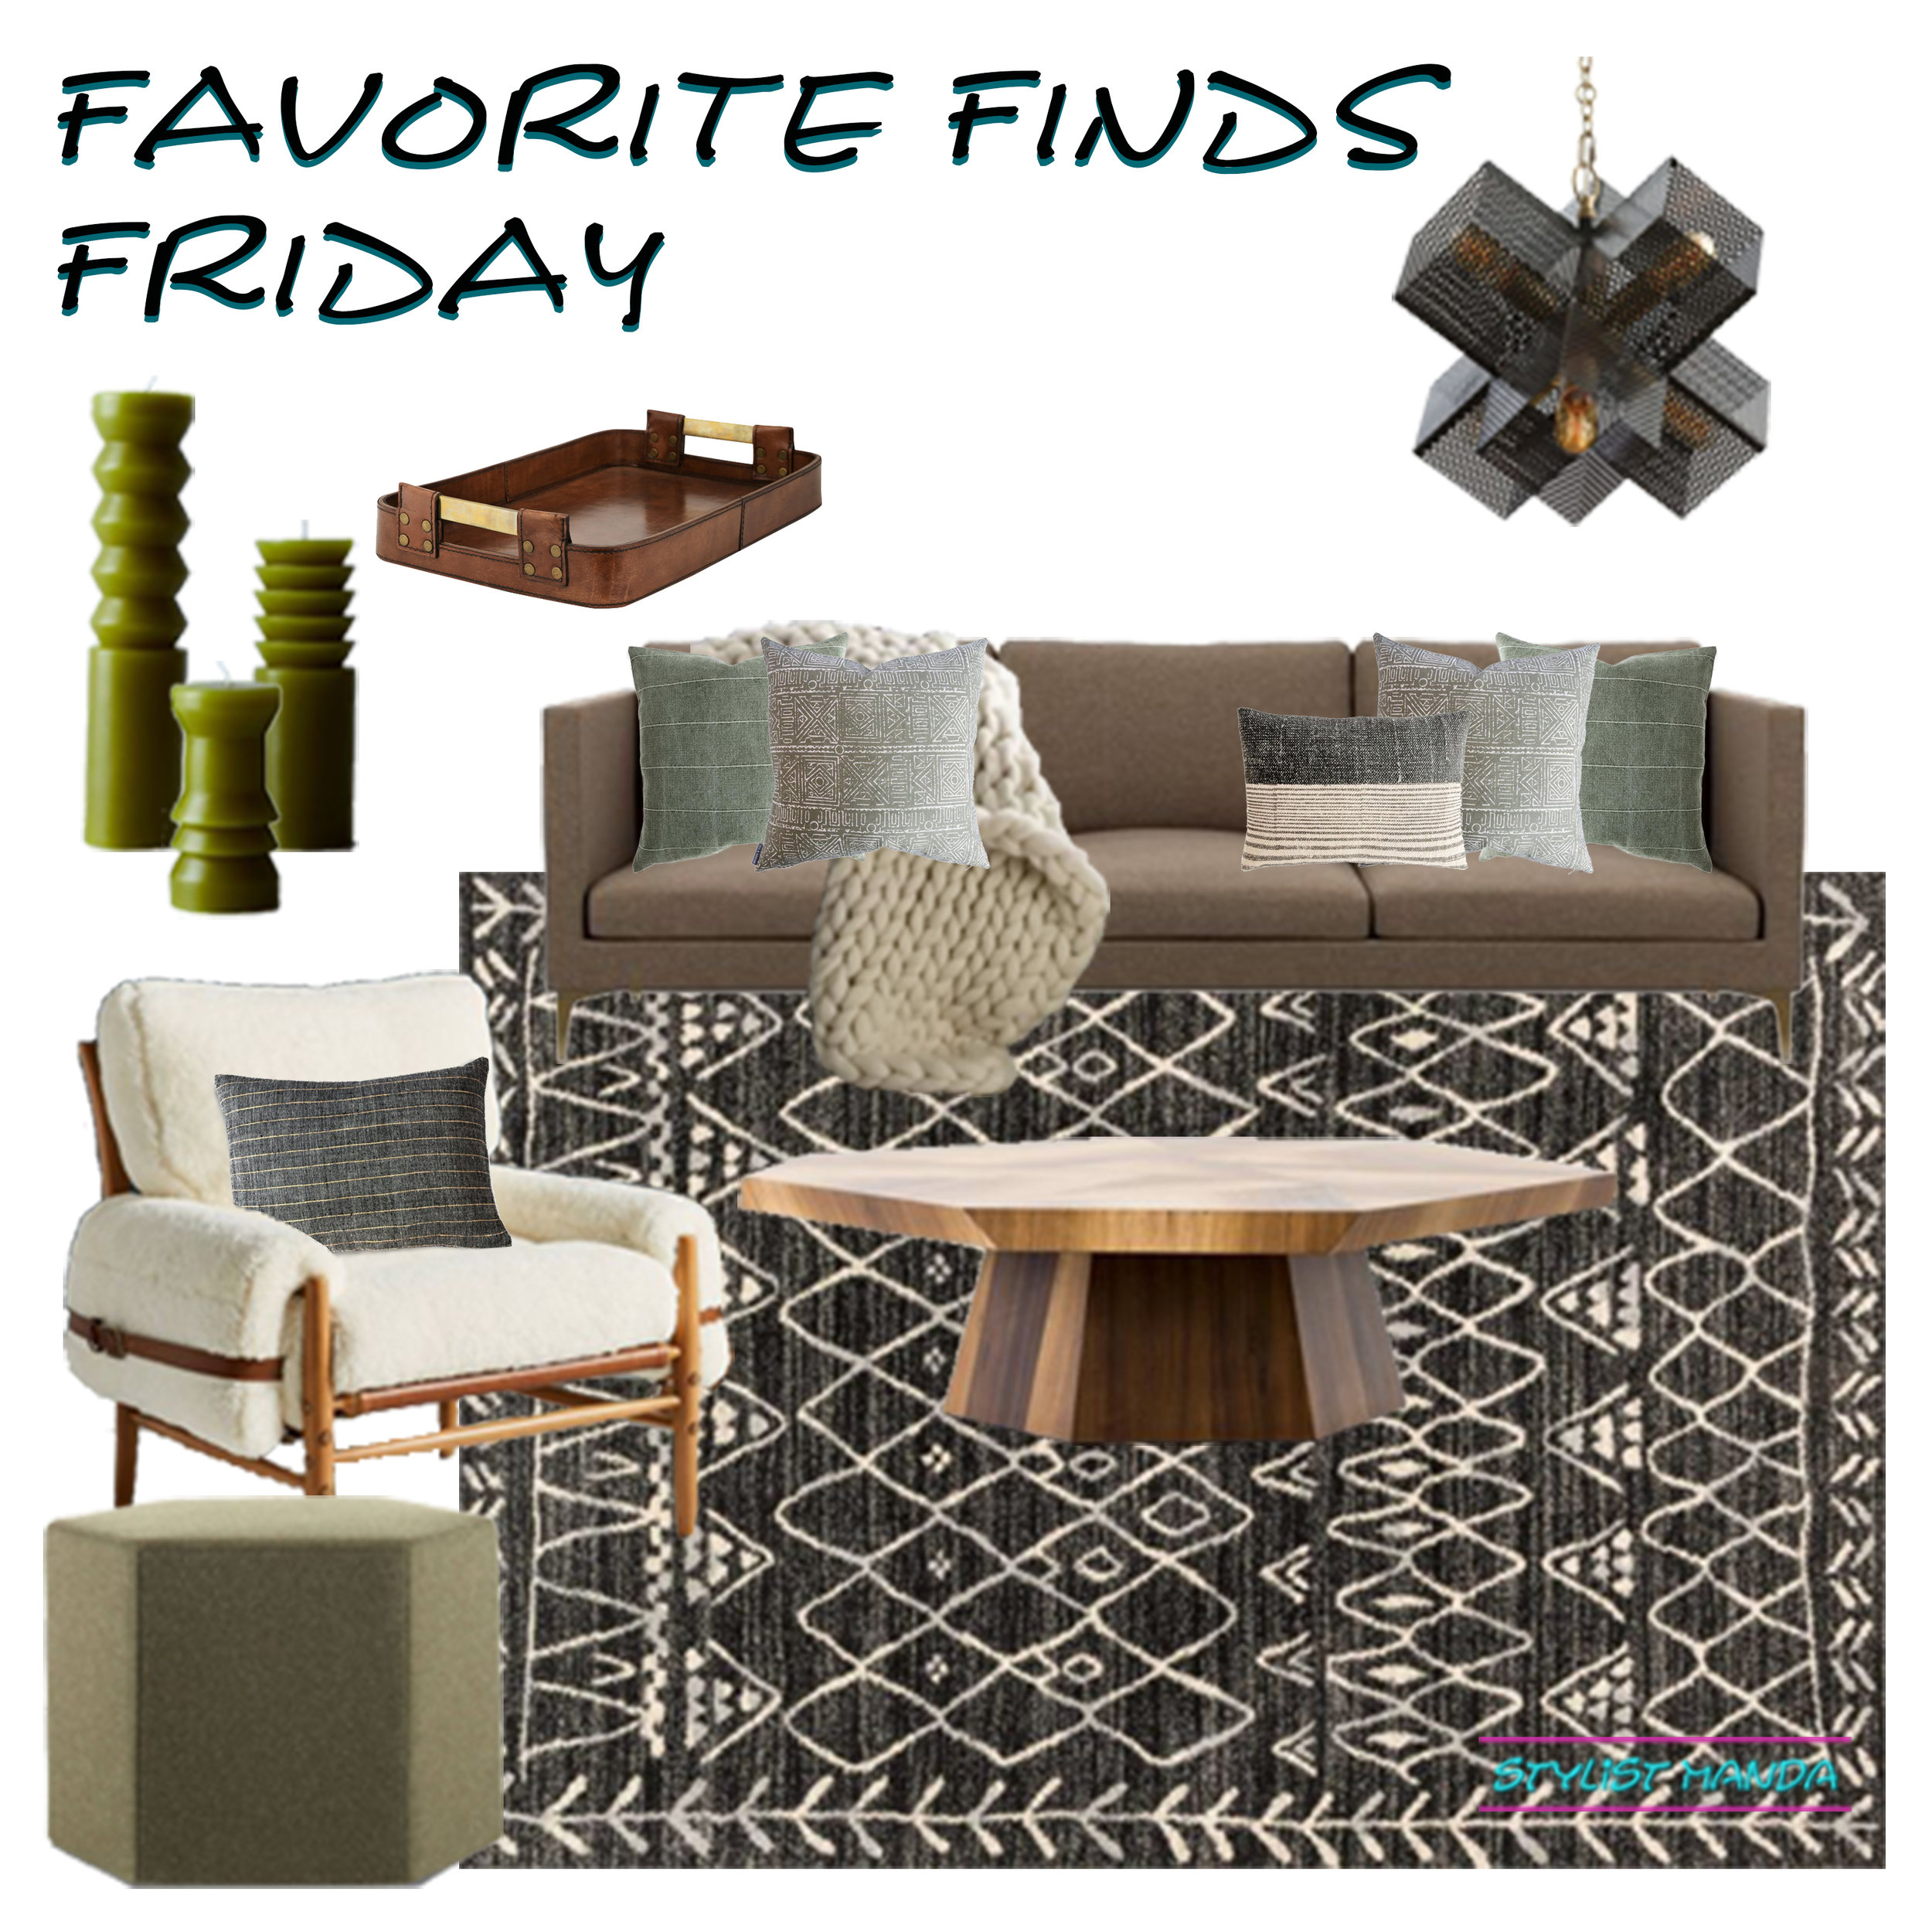 Do you need ideas to refresh your current living room? Check out this shoppable living room design for all your modern boho living room ideas.